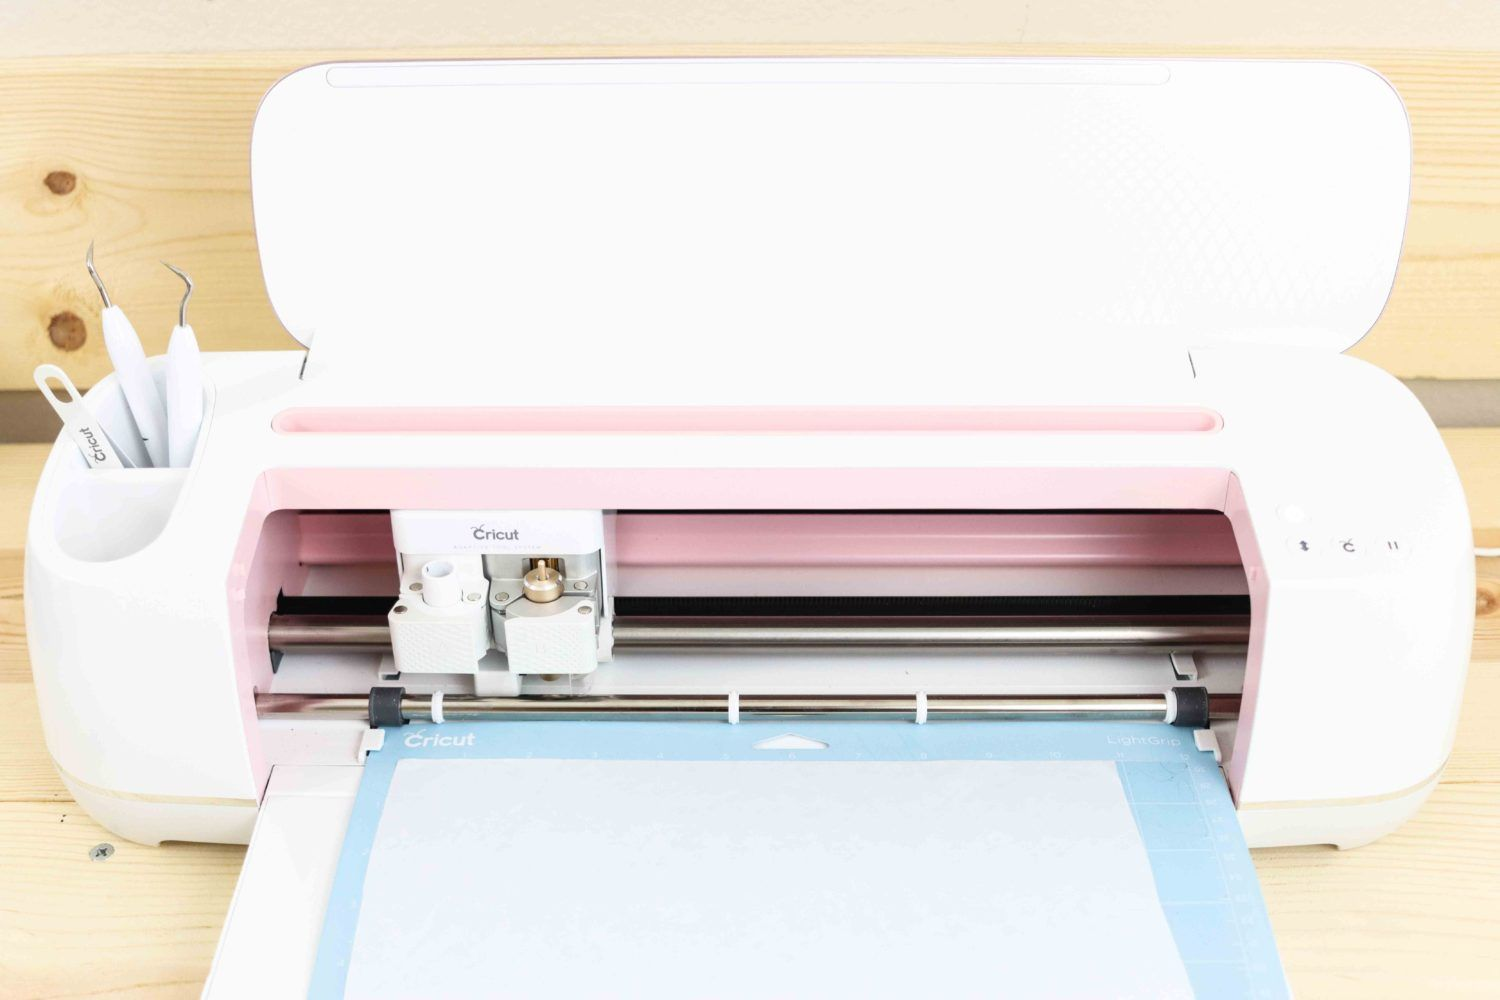 Diy freezer paper stencils with or without your cricut